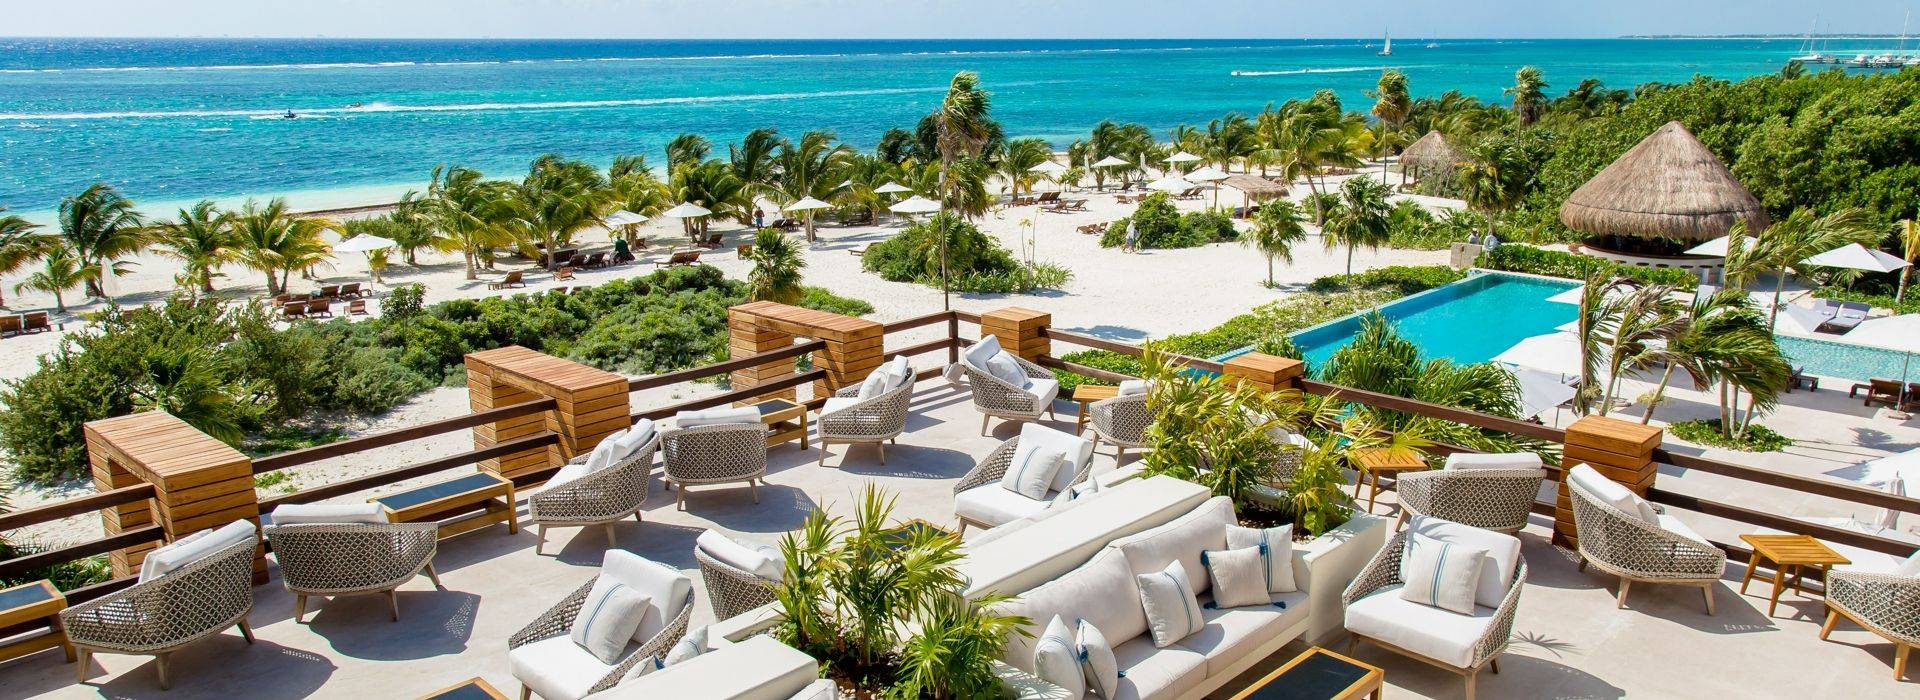 Mexico Wellness Vacations